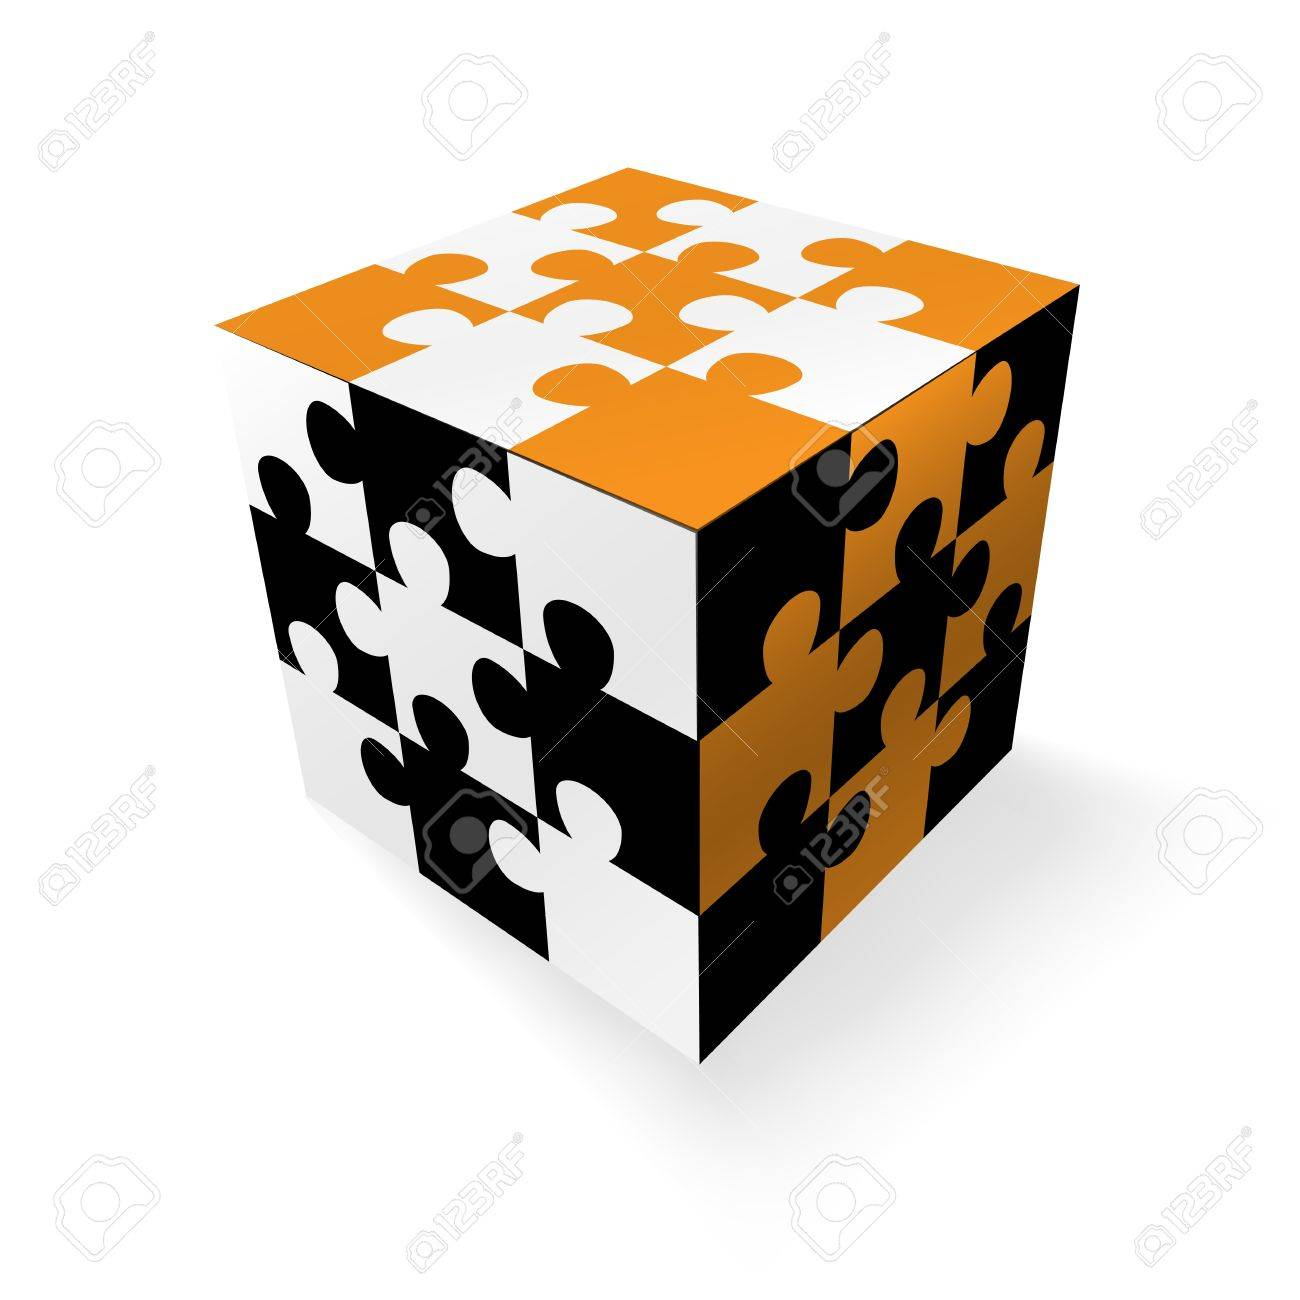 Jigsaw concept design Stock Vector - 13927865